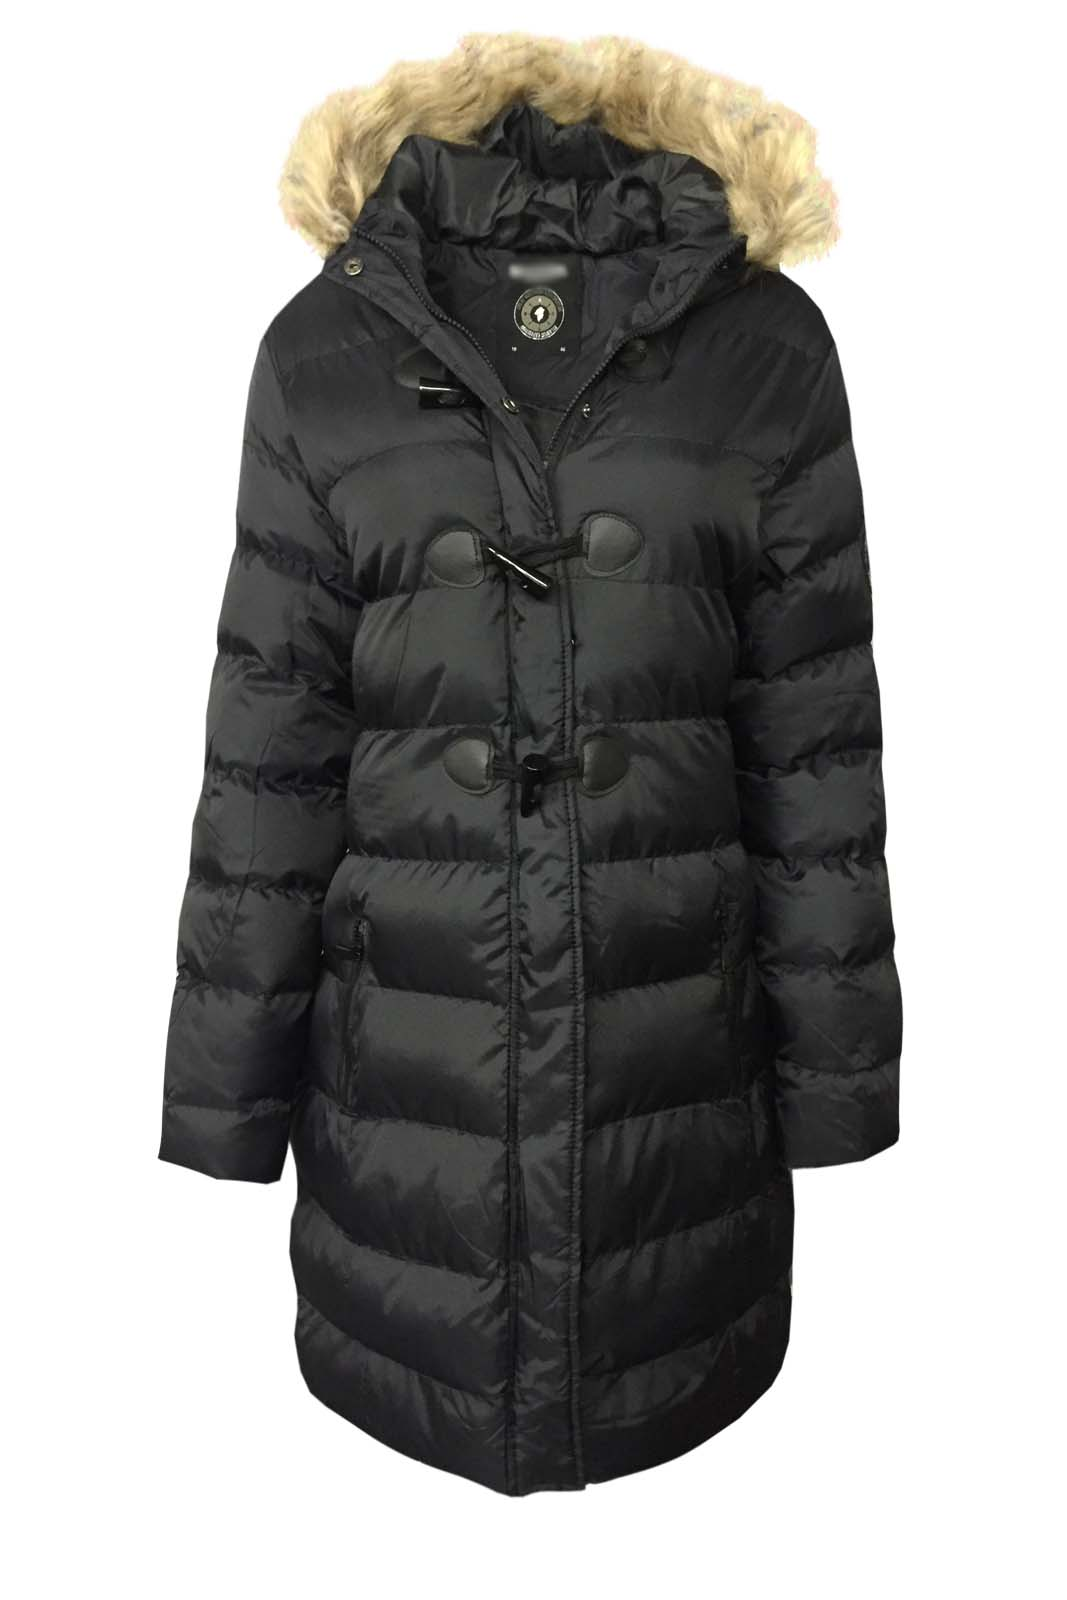 Ladies New Parka Faux Fur Hooded Jacket Warm Puffer Padded